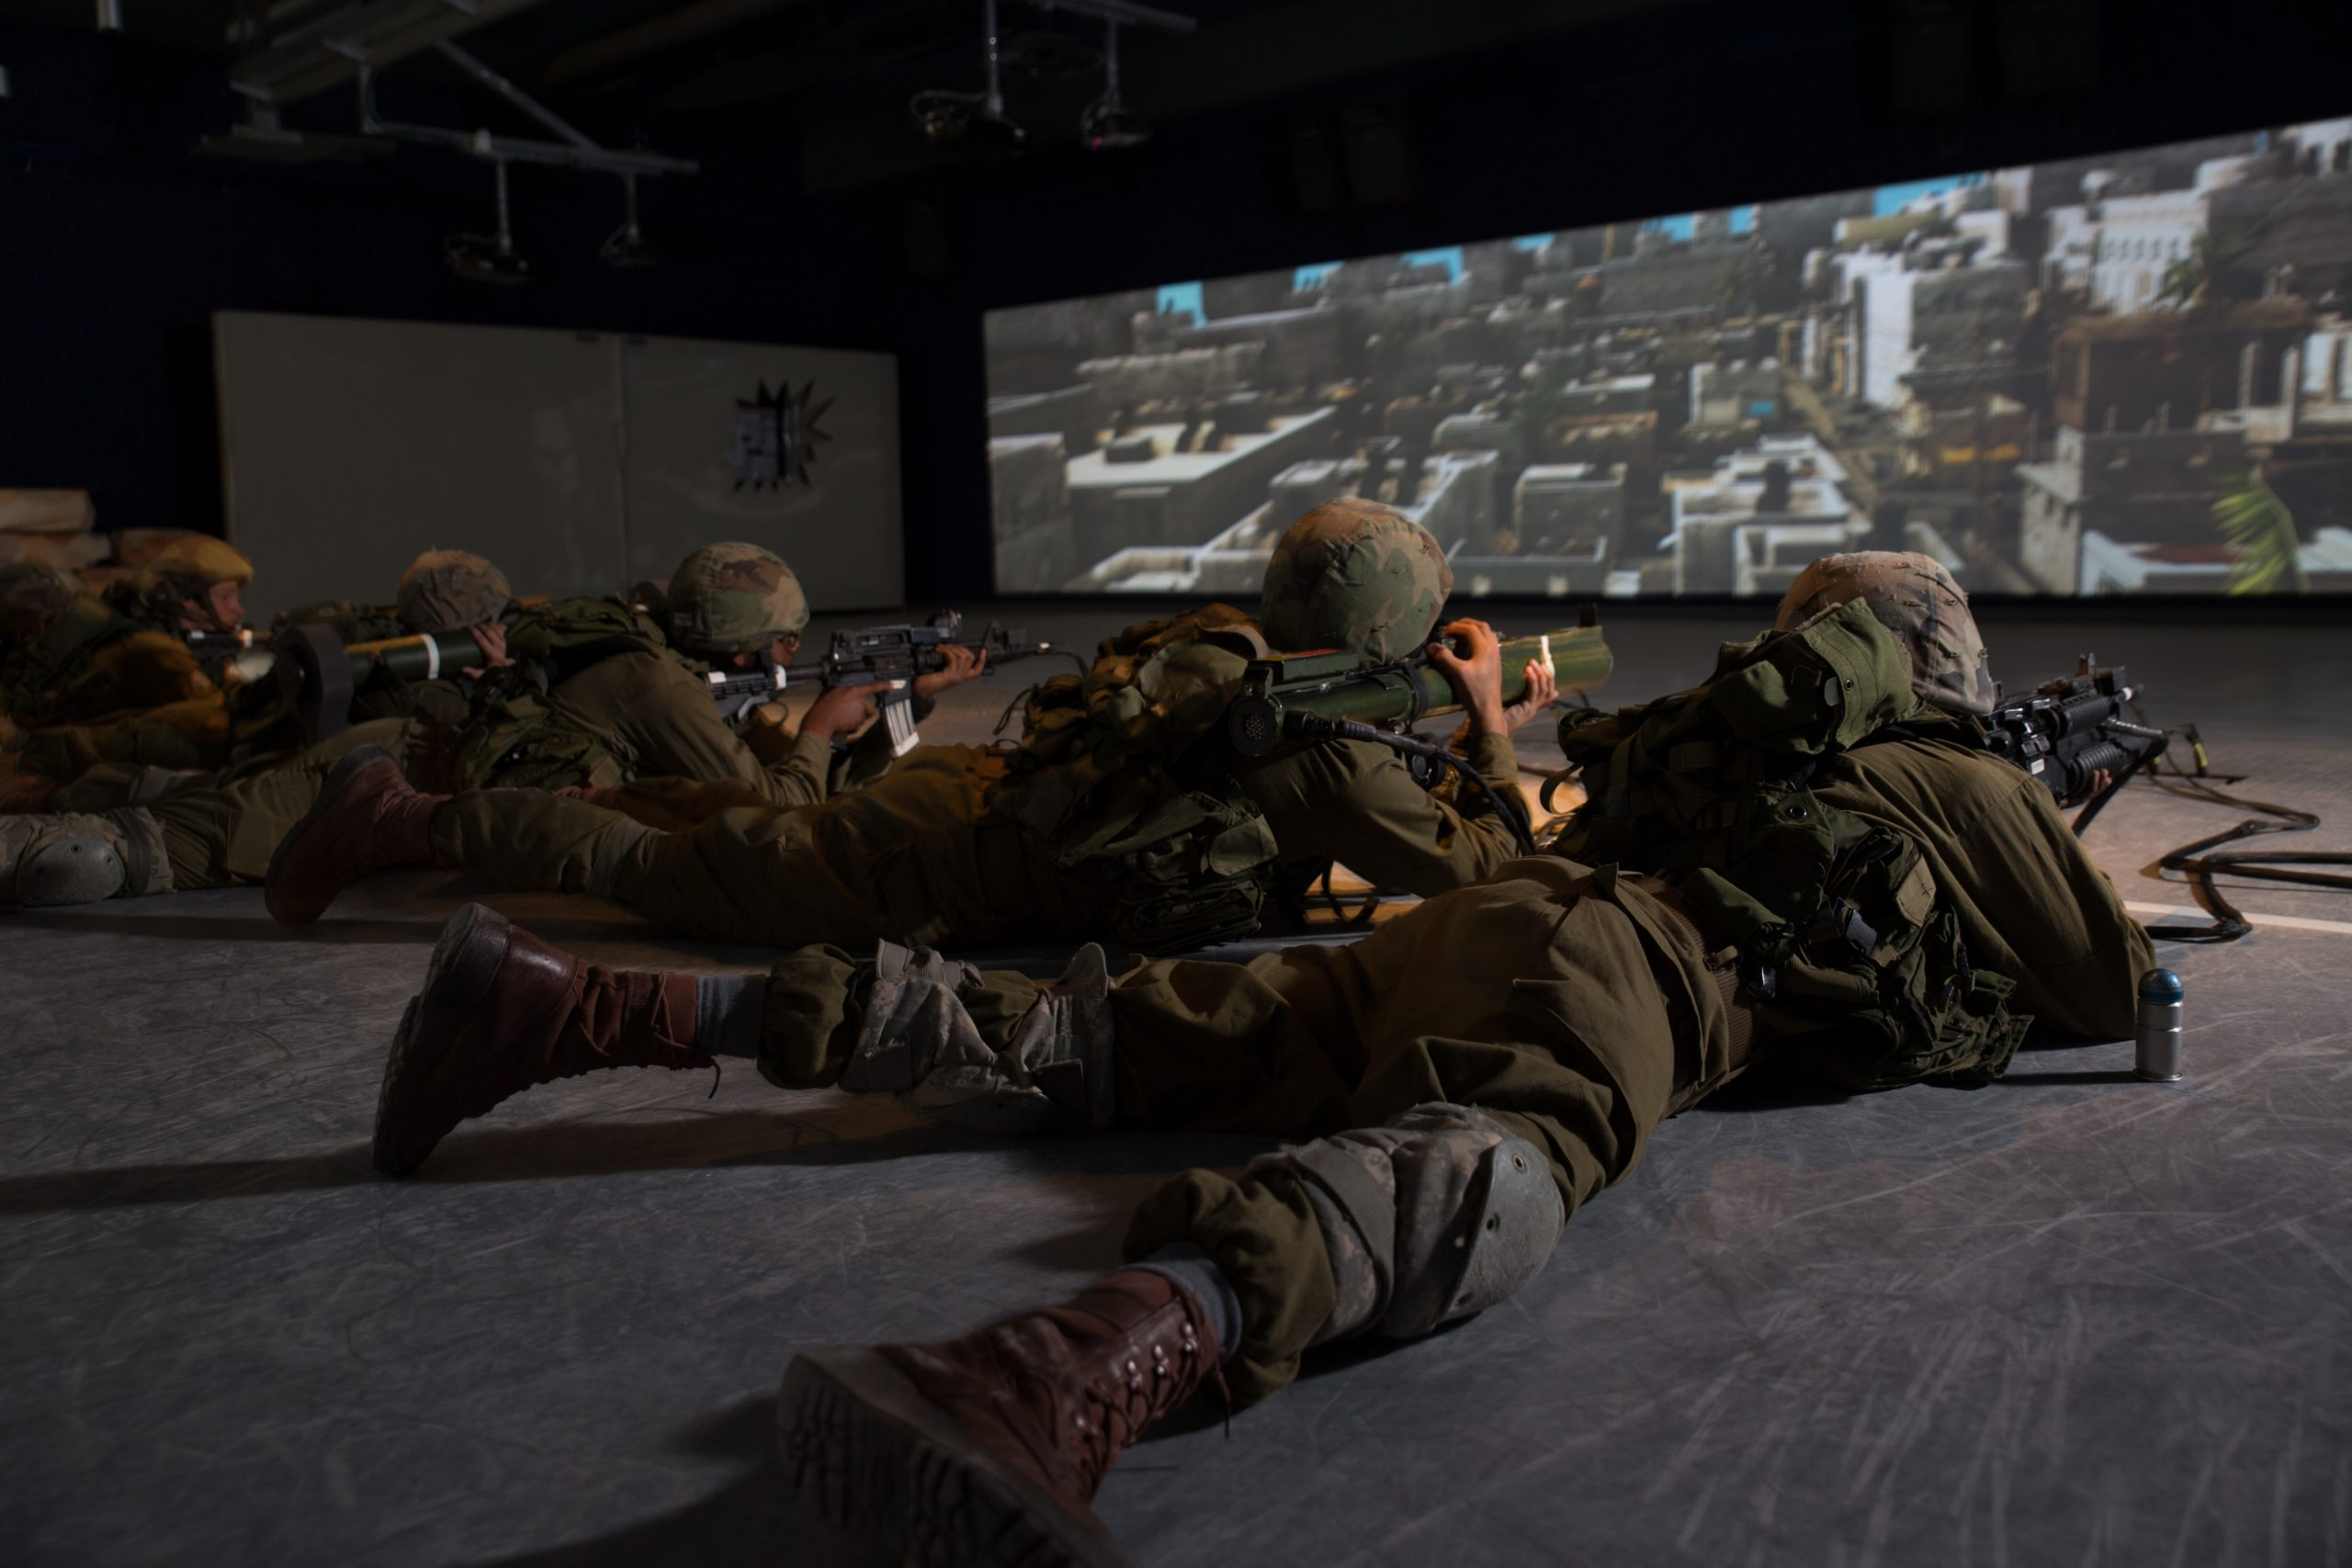 <p>The virtual platform enables individual and/or group marksmanship training. advanced weapons training and tactical shooting exercise</p>